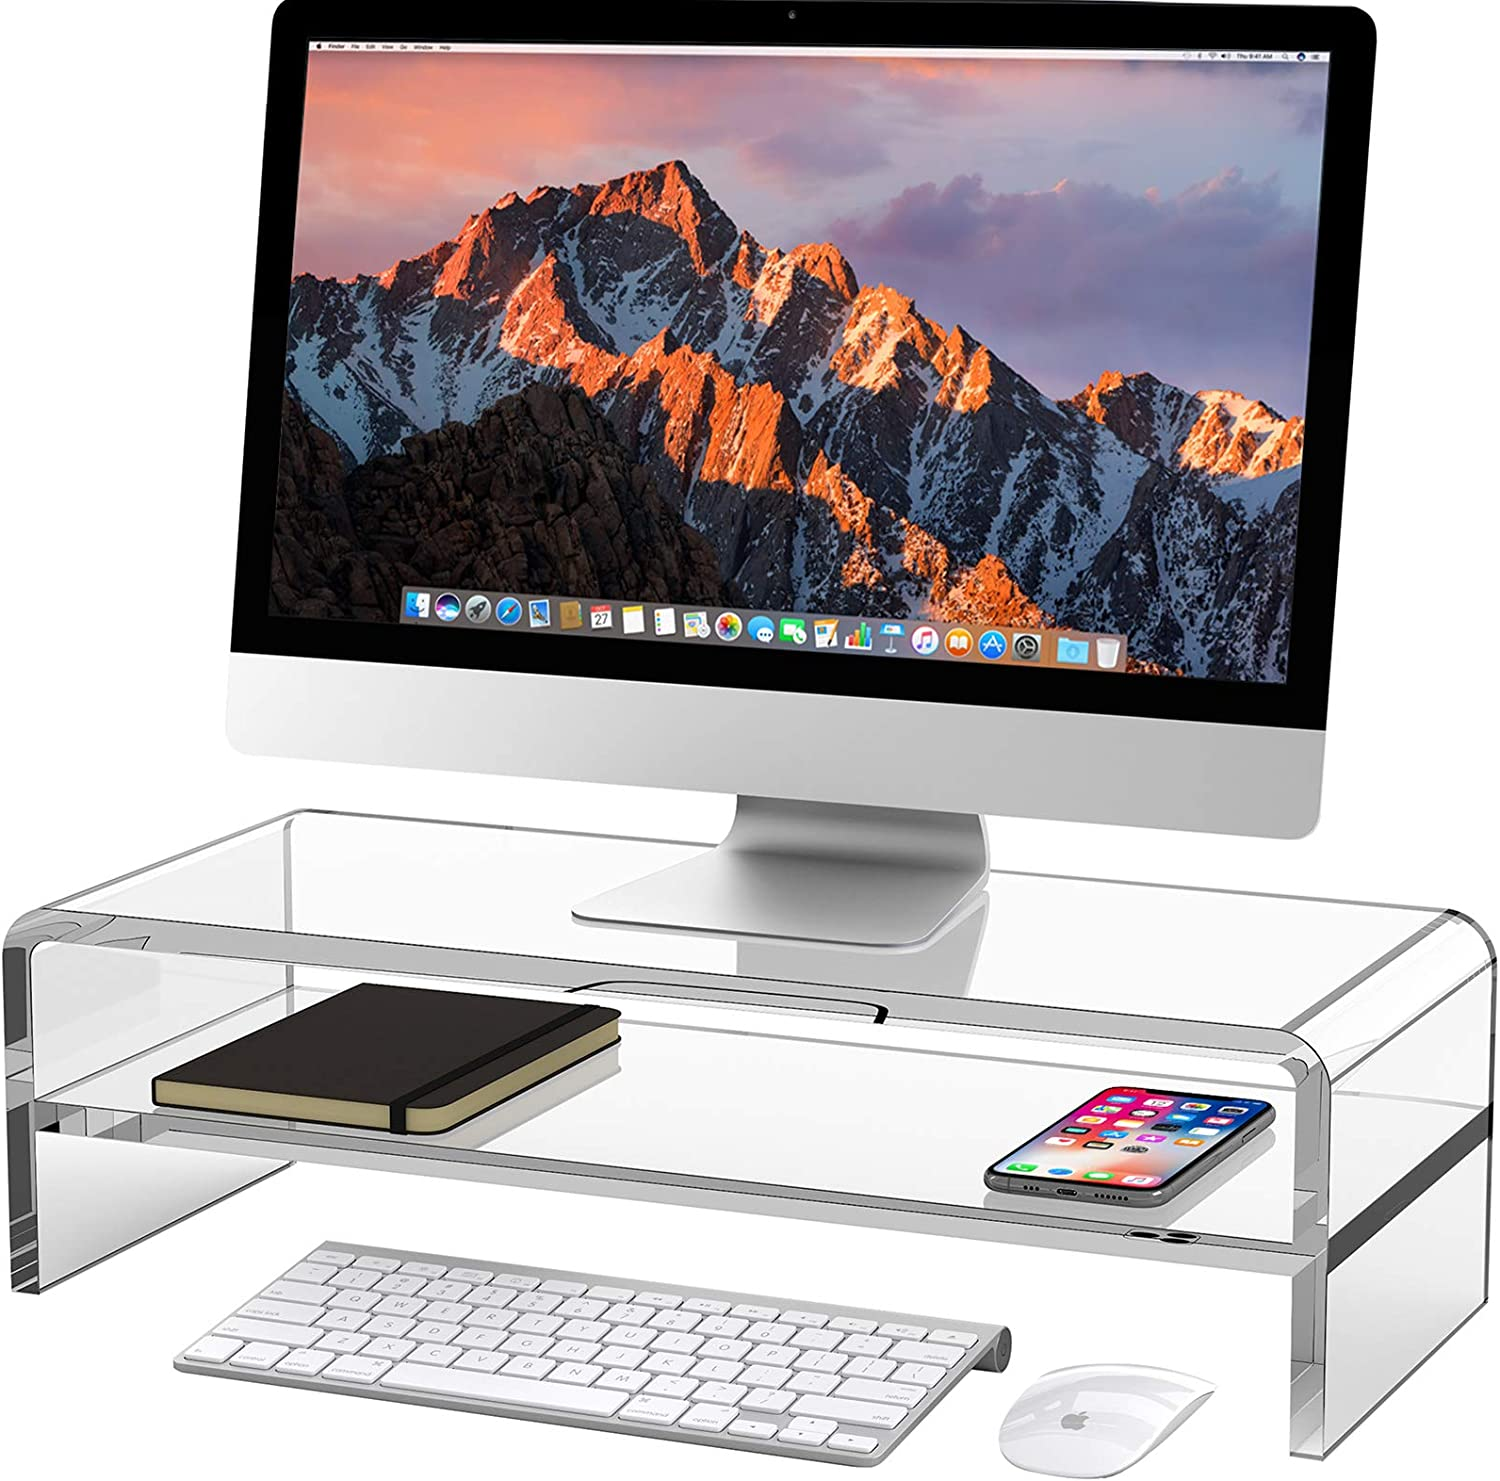 Egchi Acrylic Monitor Stand, 2 Tiers Computer Monitor Riser(20x8x5.5 Inch), Monitor Riser/Computer Stand for Home,Office,Business,PC Desk Stand for Keyboard Storage& Multi-Media Laptop Printer Screen